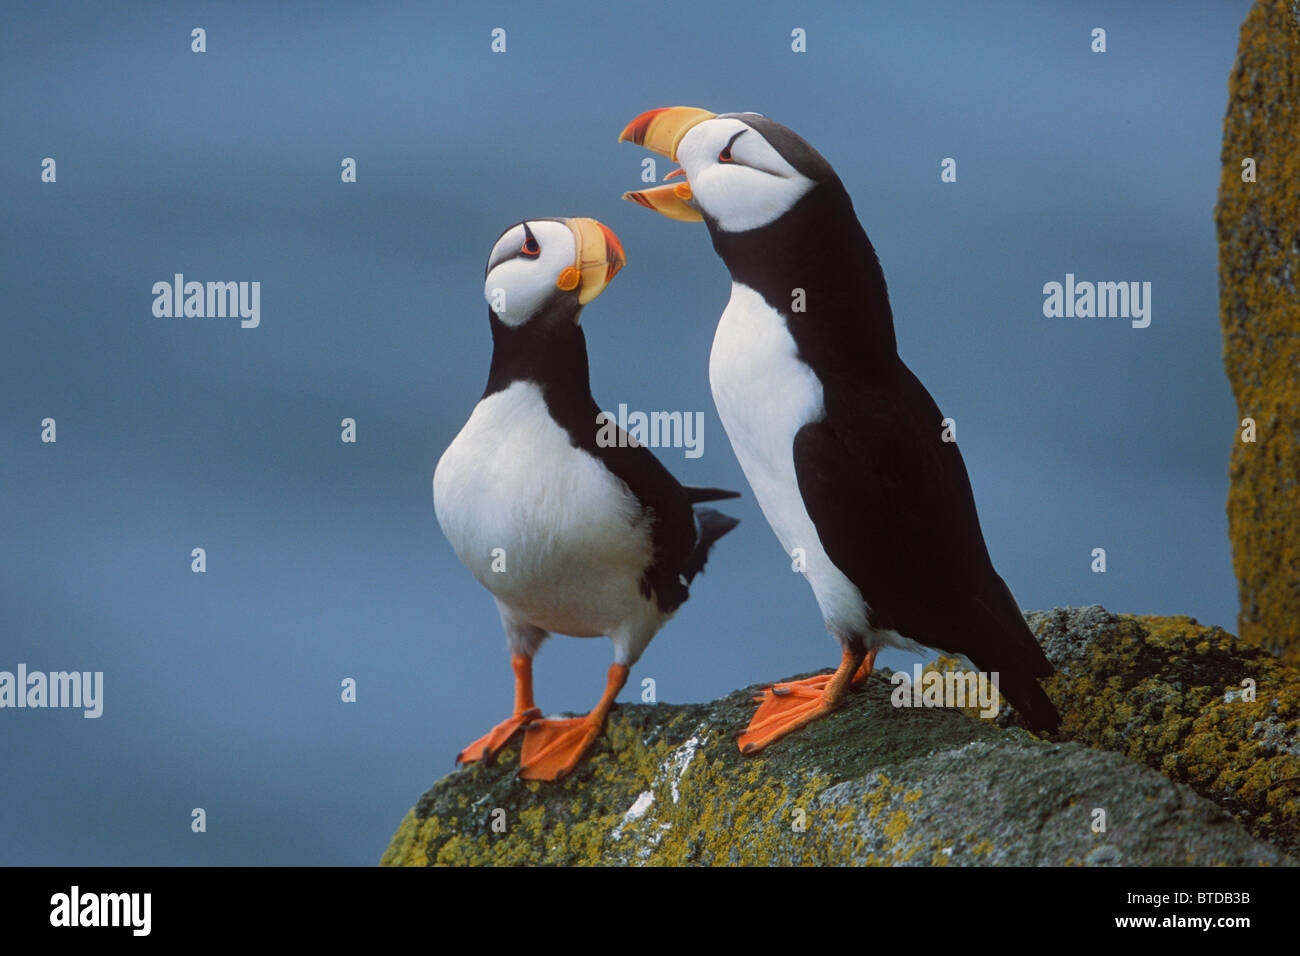 Horned Puffin pair on ledge, courtship display, Round Island, Walrus Islands State Game Sanctuary, Bristol Bay, Alaska Stock Photo